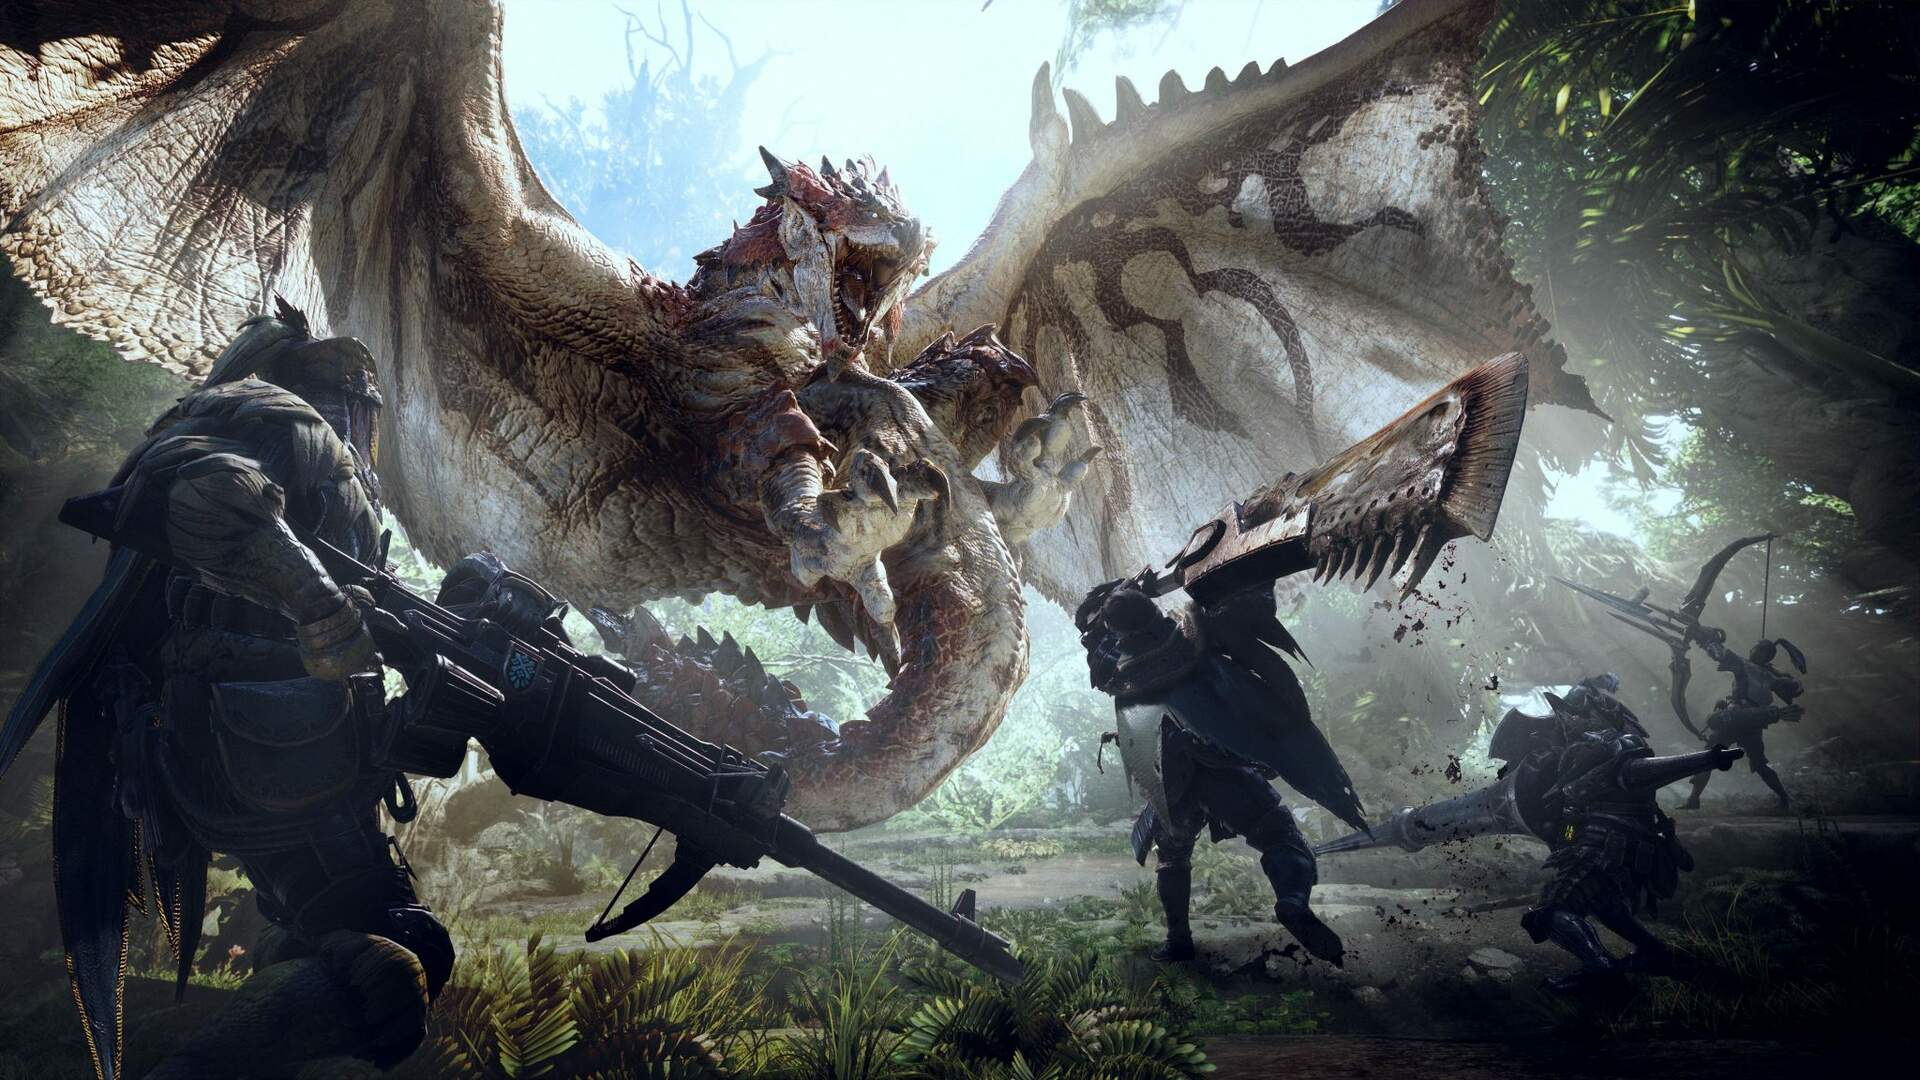 Capcom Aims For New Generation With Kid-Friendly Monster Hunter Game